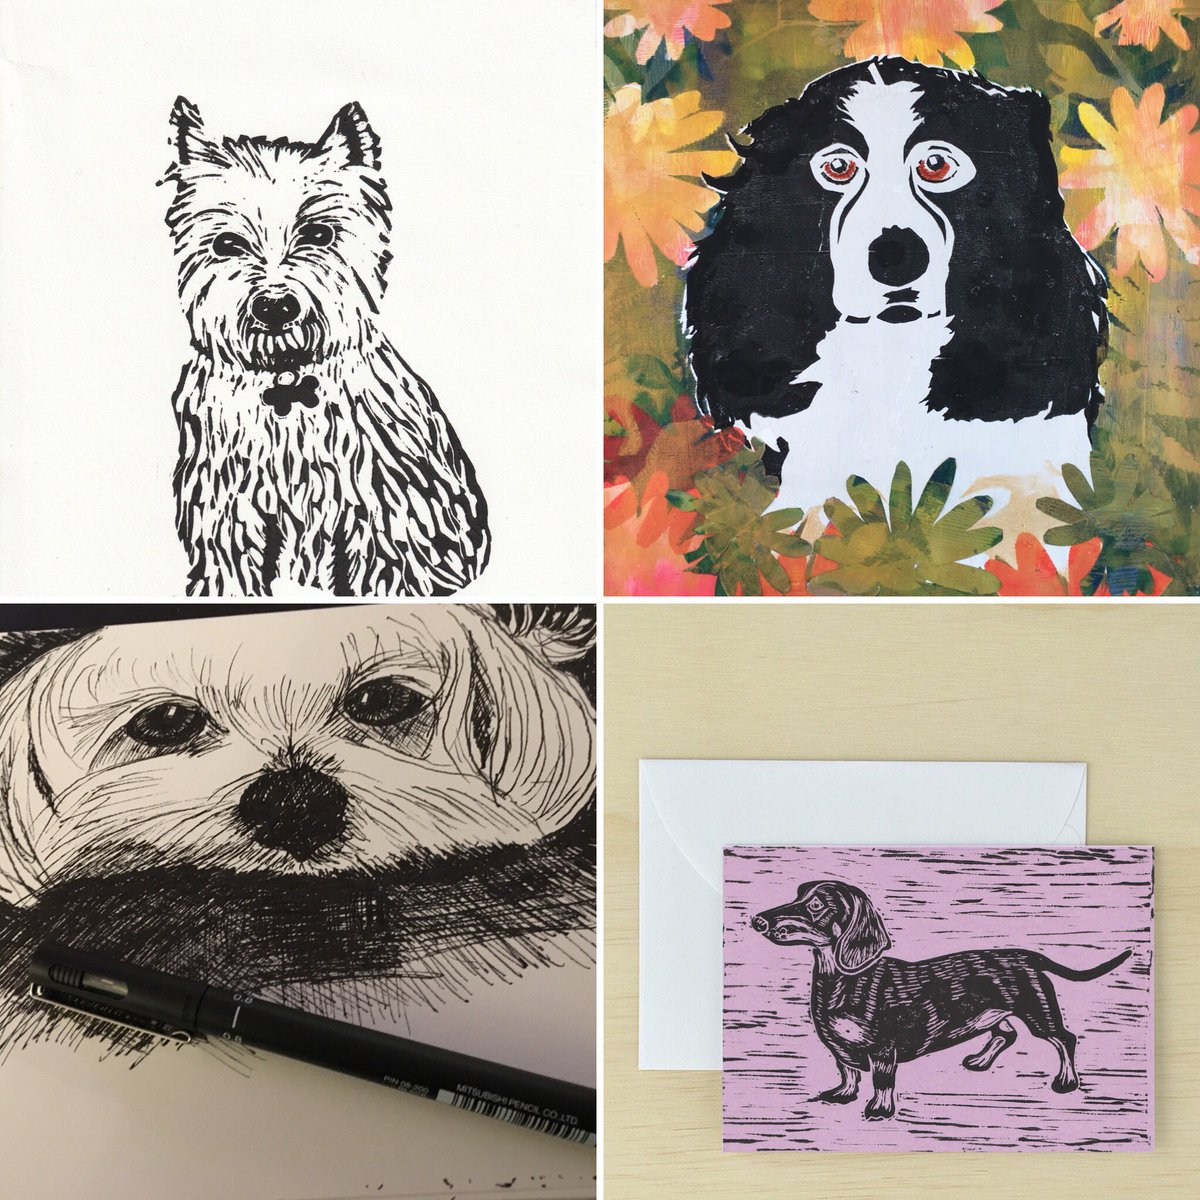 #dogart for #WalkingTheDogDay 💜🐶🐶 handmade original prints and drawings available in my Etsy shop **commisions accepted** etsy.com/uk/shop/Origin… #doglovers #GiftIdeas #MothersDayGift #handmade #OnlineCraft #shopindie #shopsmall #justacard